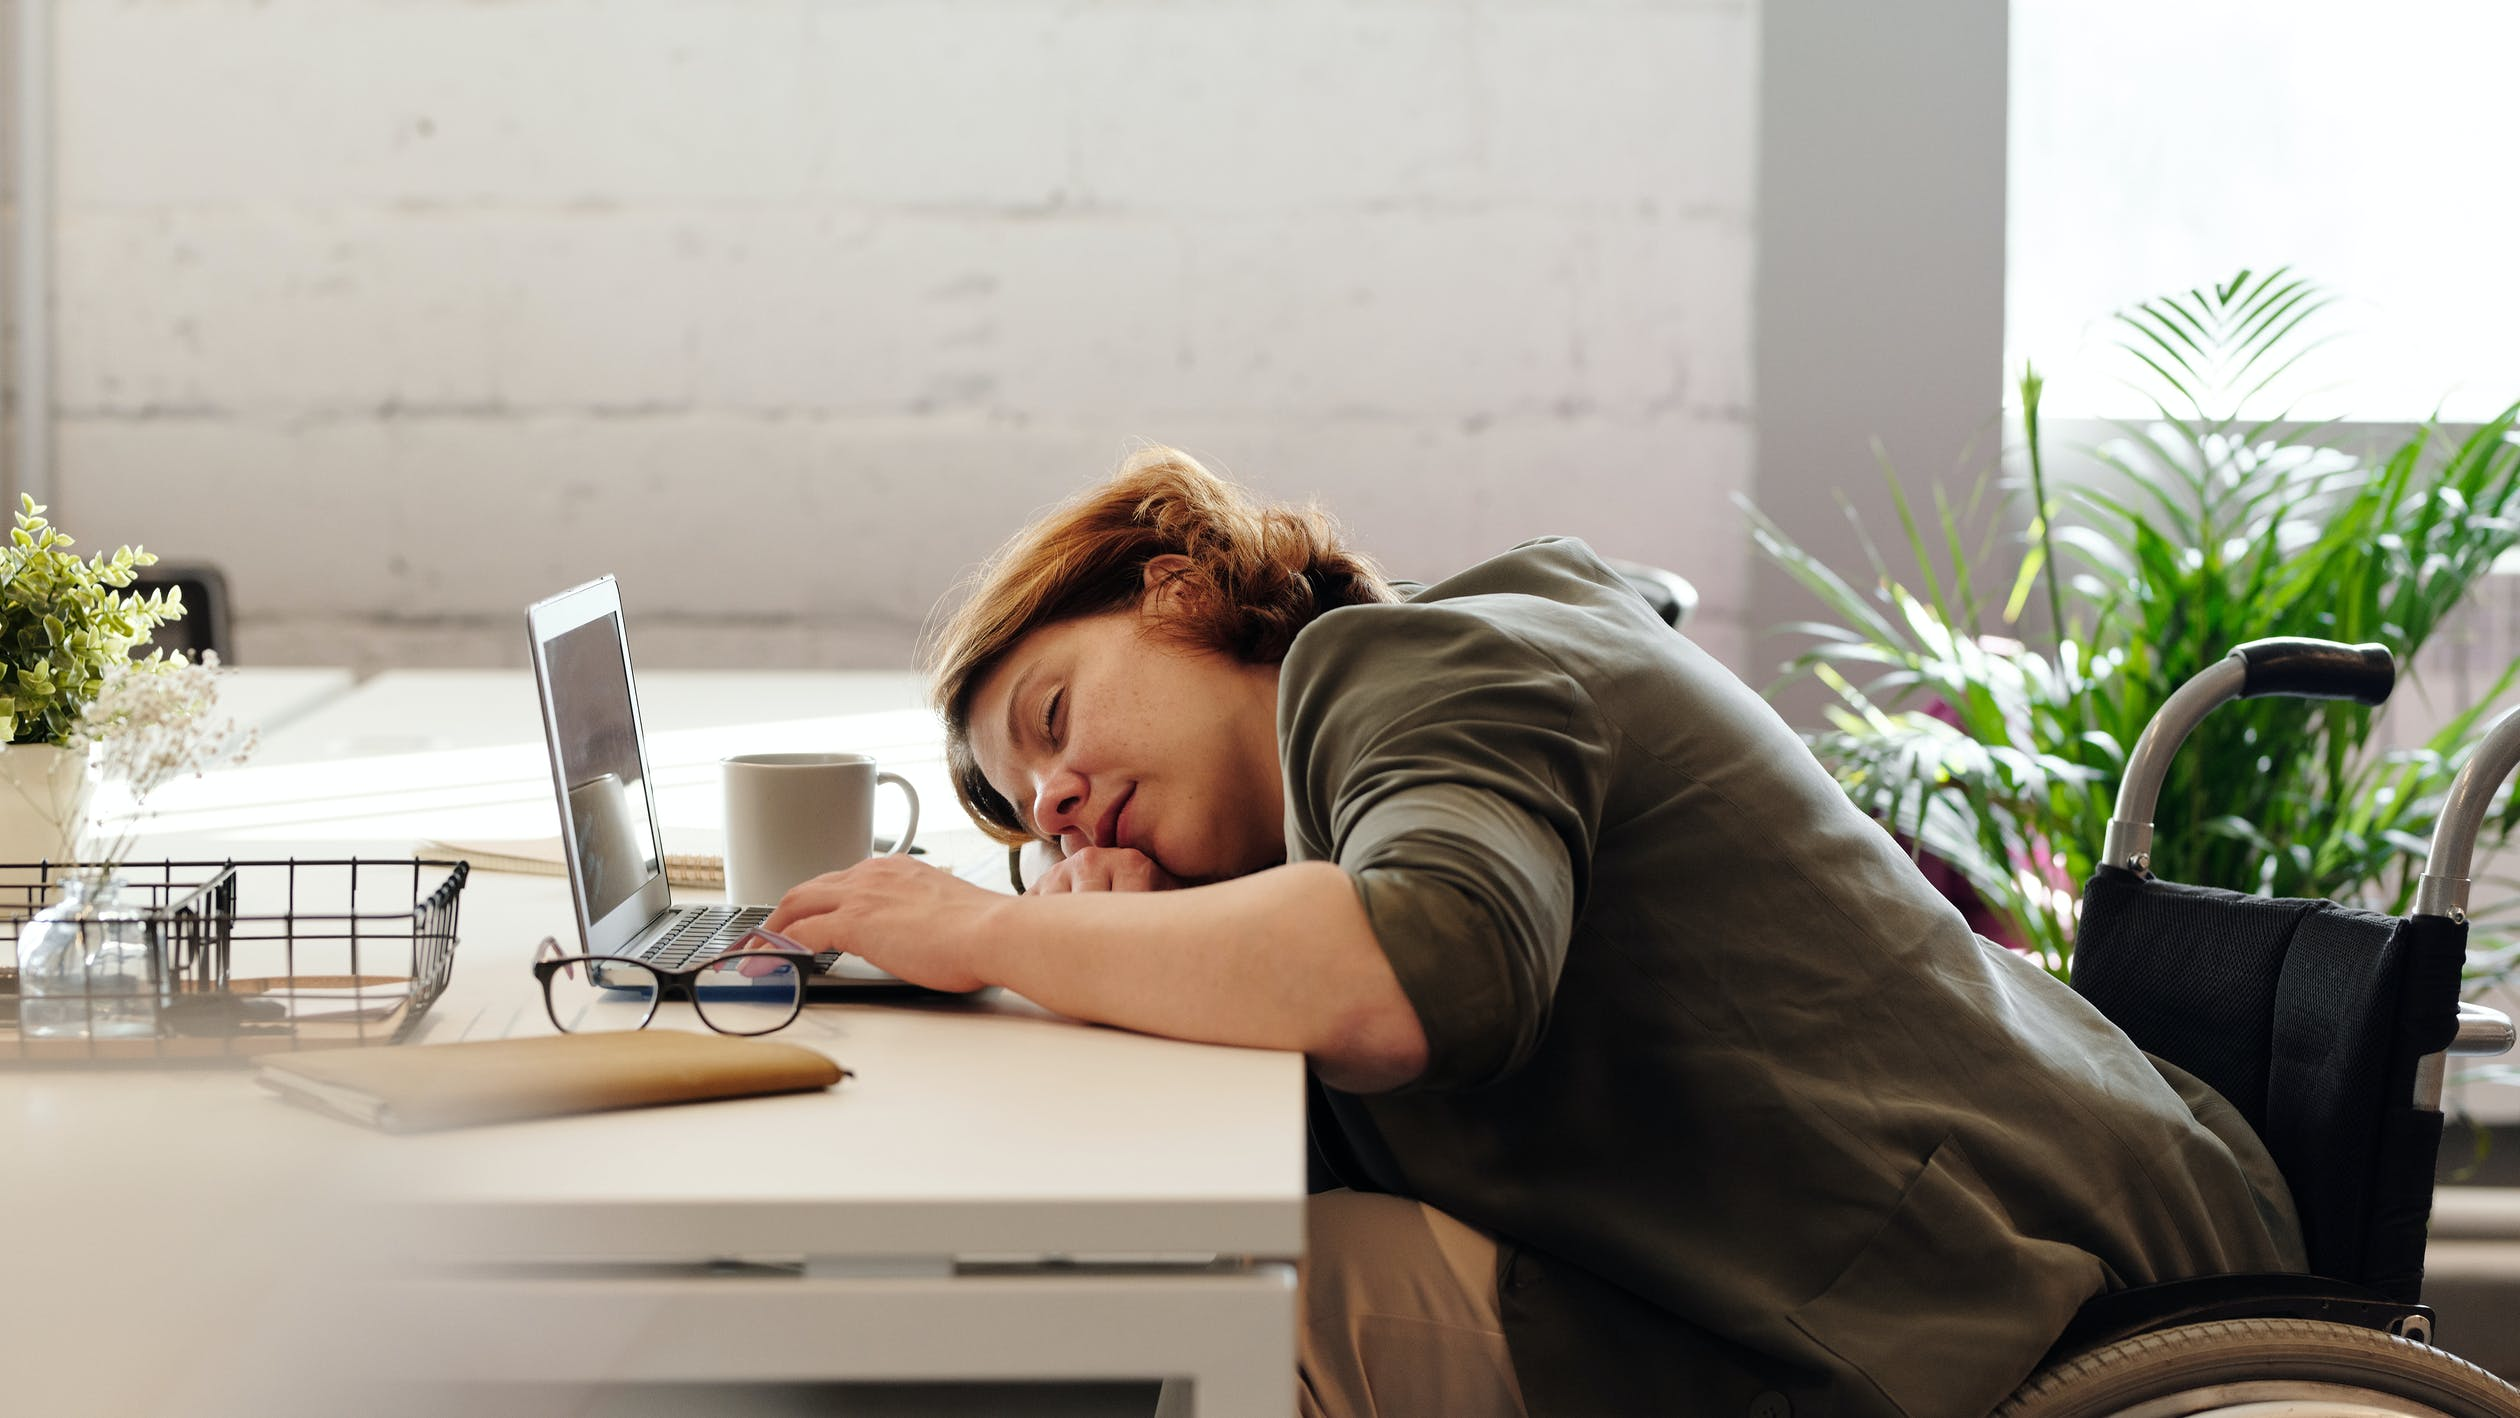 A woman laying her head down on a table in front of her open laptop. Photo used courtesy of Pexels.com